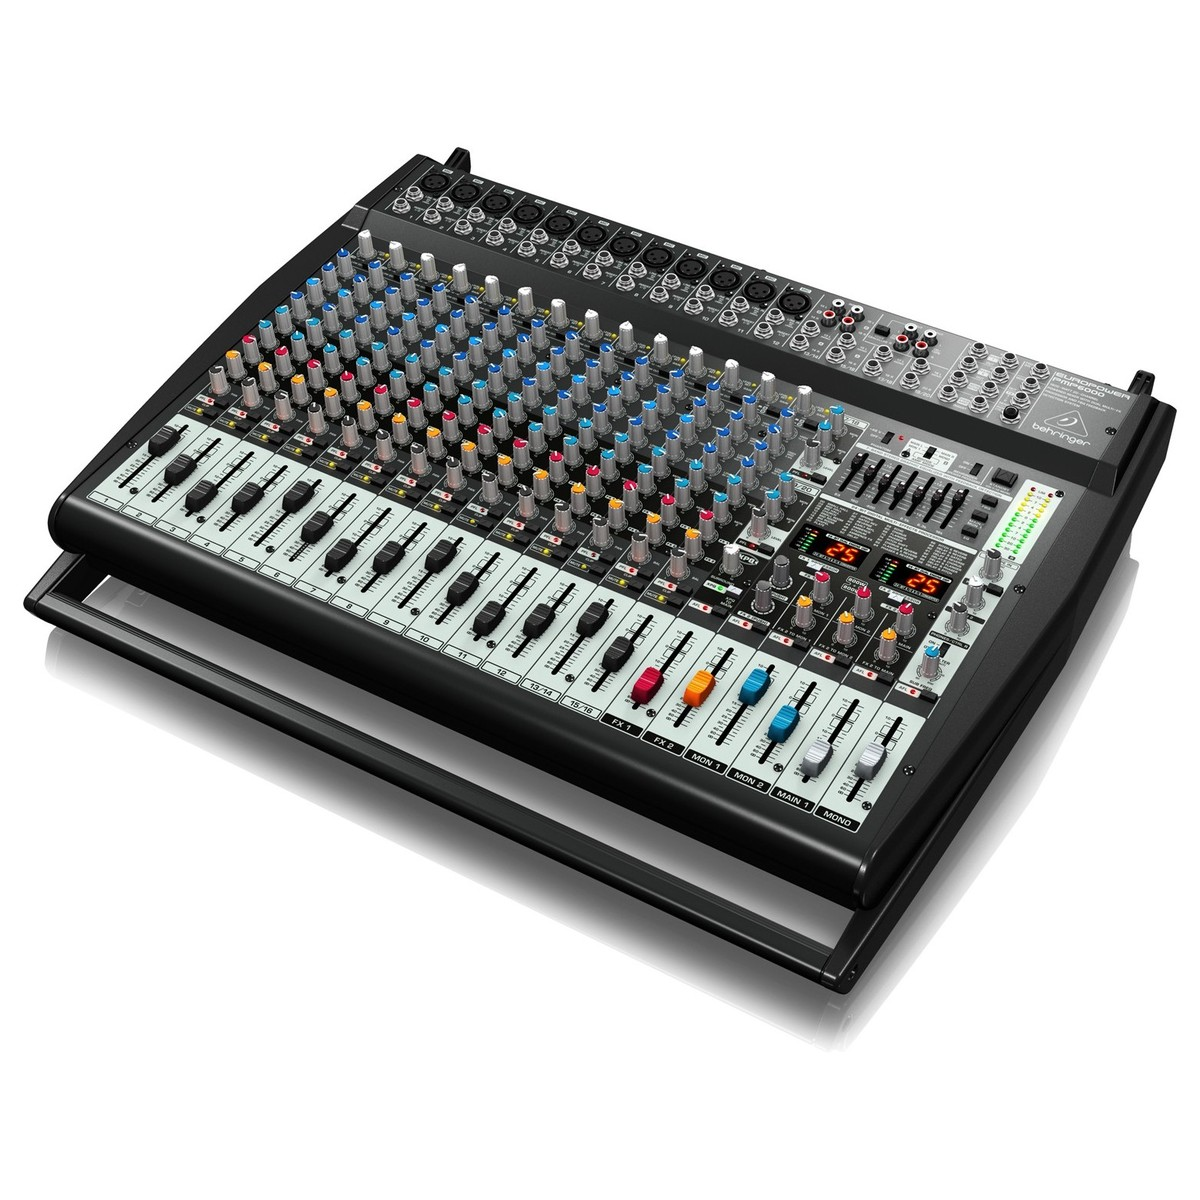 behringer pmp6000 europower mixer at gear4music. Black Bedroom Furniture Sets. Home Design Ideas